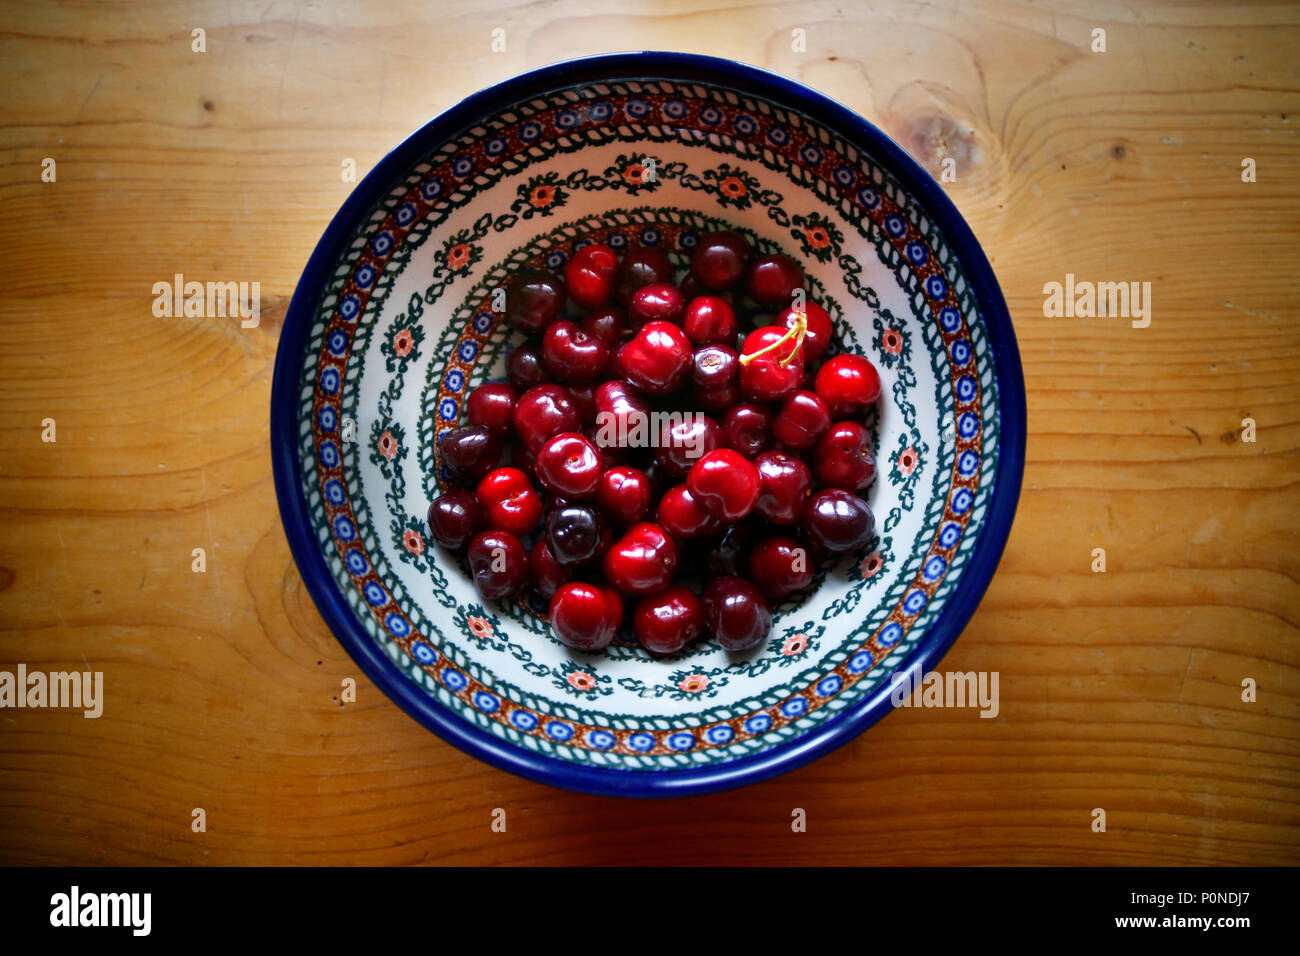 Bowl of cherries on an old pine table. - Stock Image